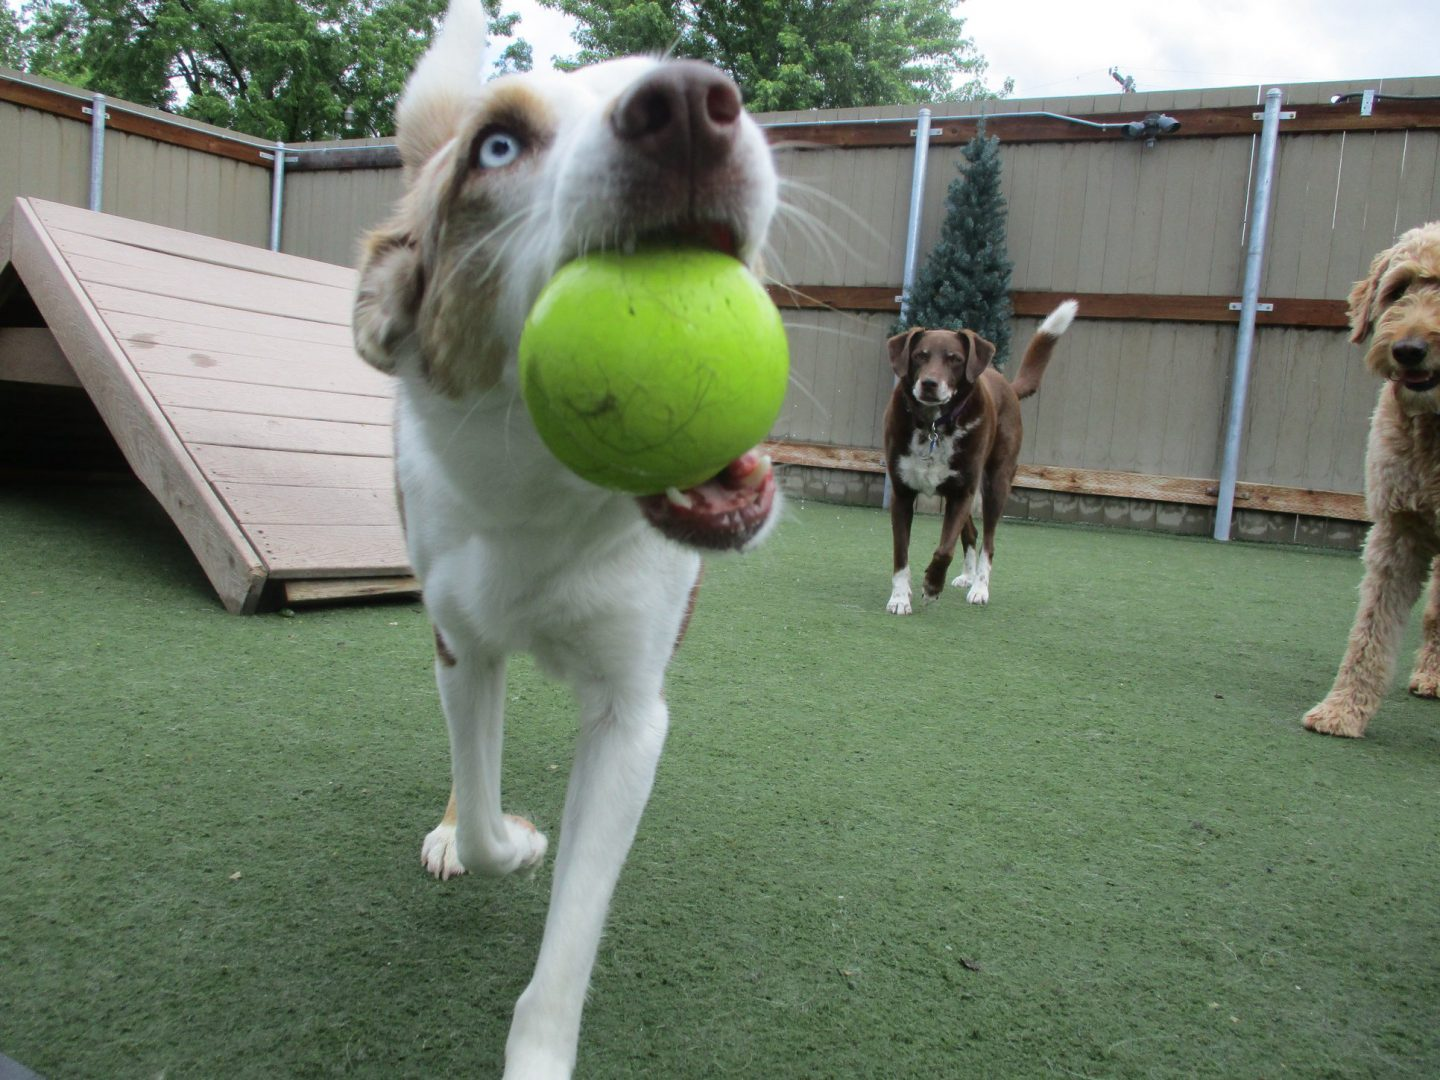 Quick Paws | Missoula's best dog walking, boarding, grooming